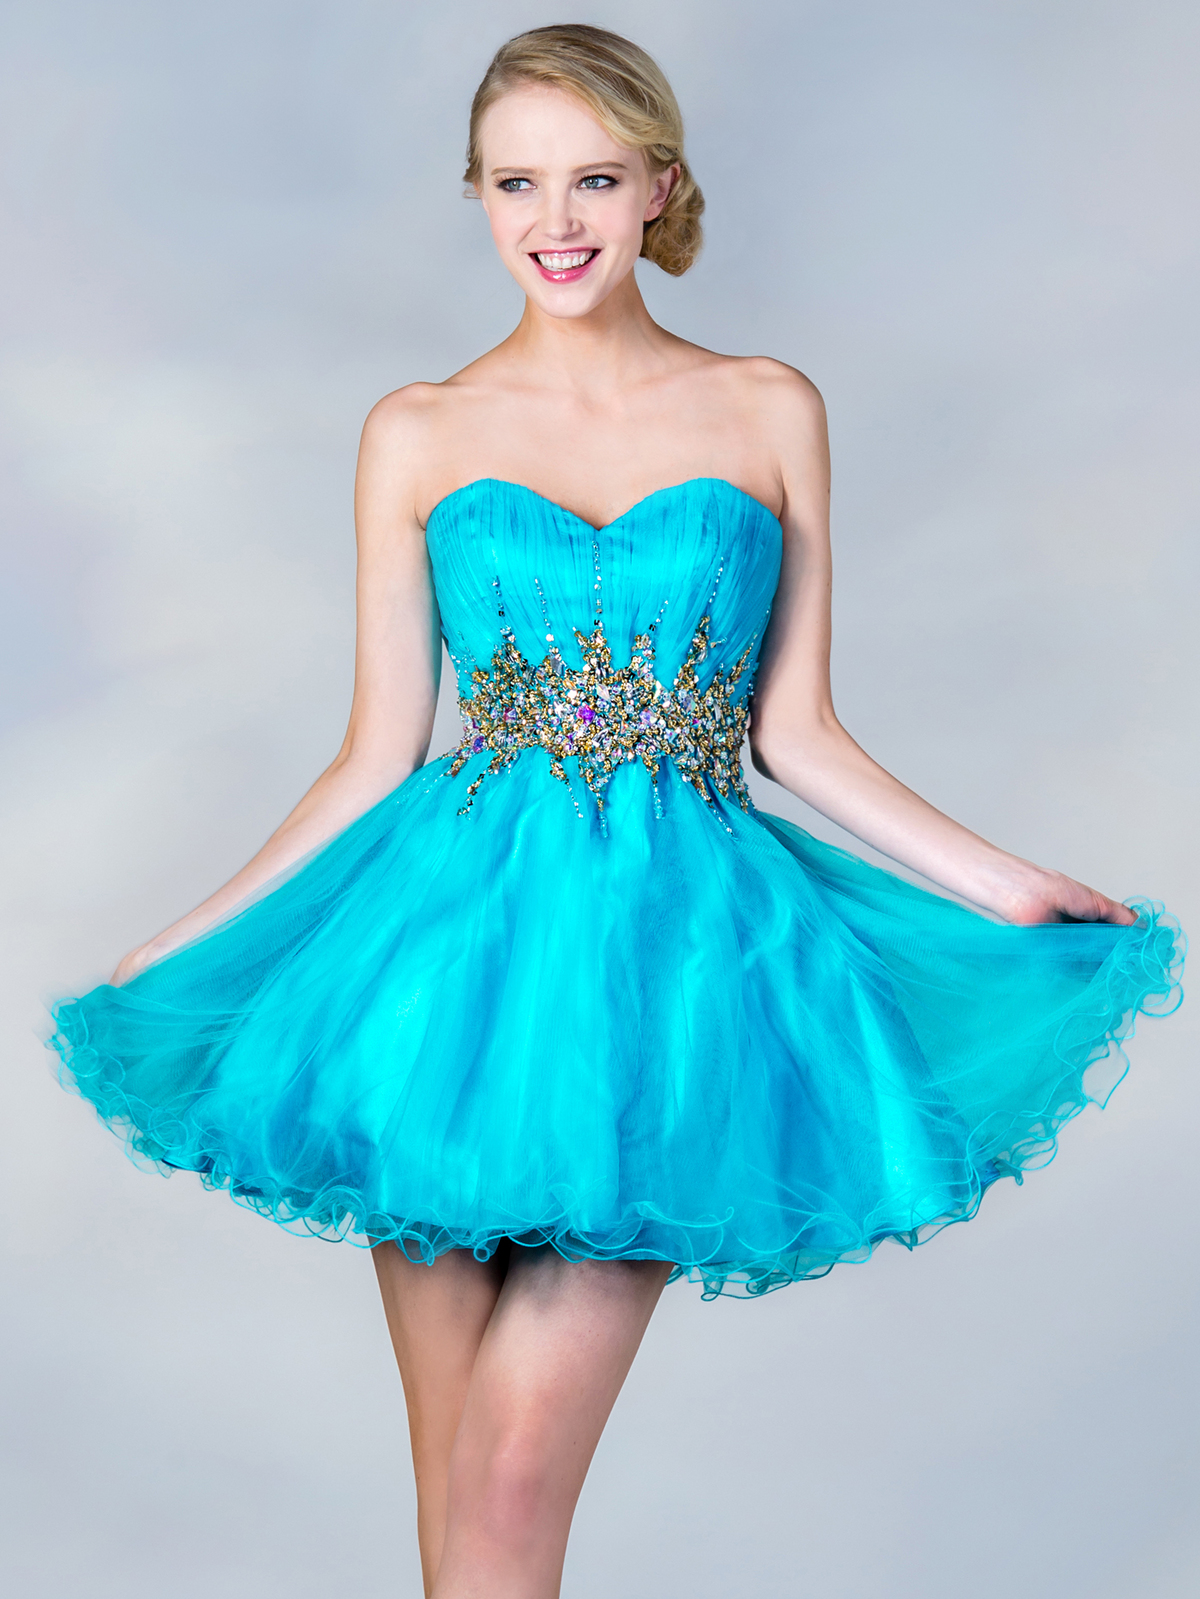 Jeweled Waist Party Dress | Sung Boutique L.A.